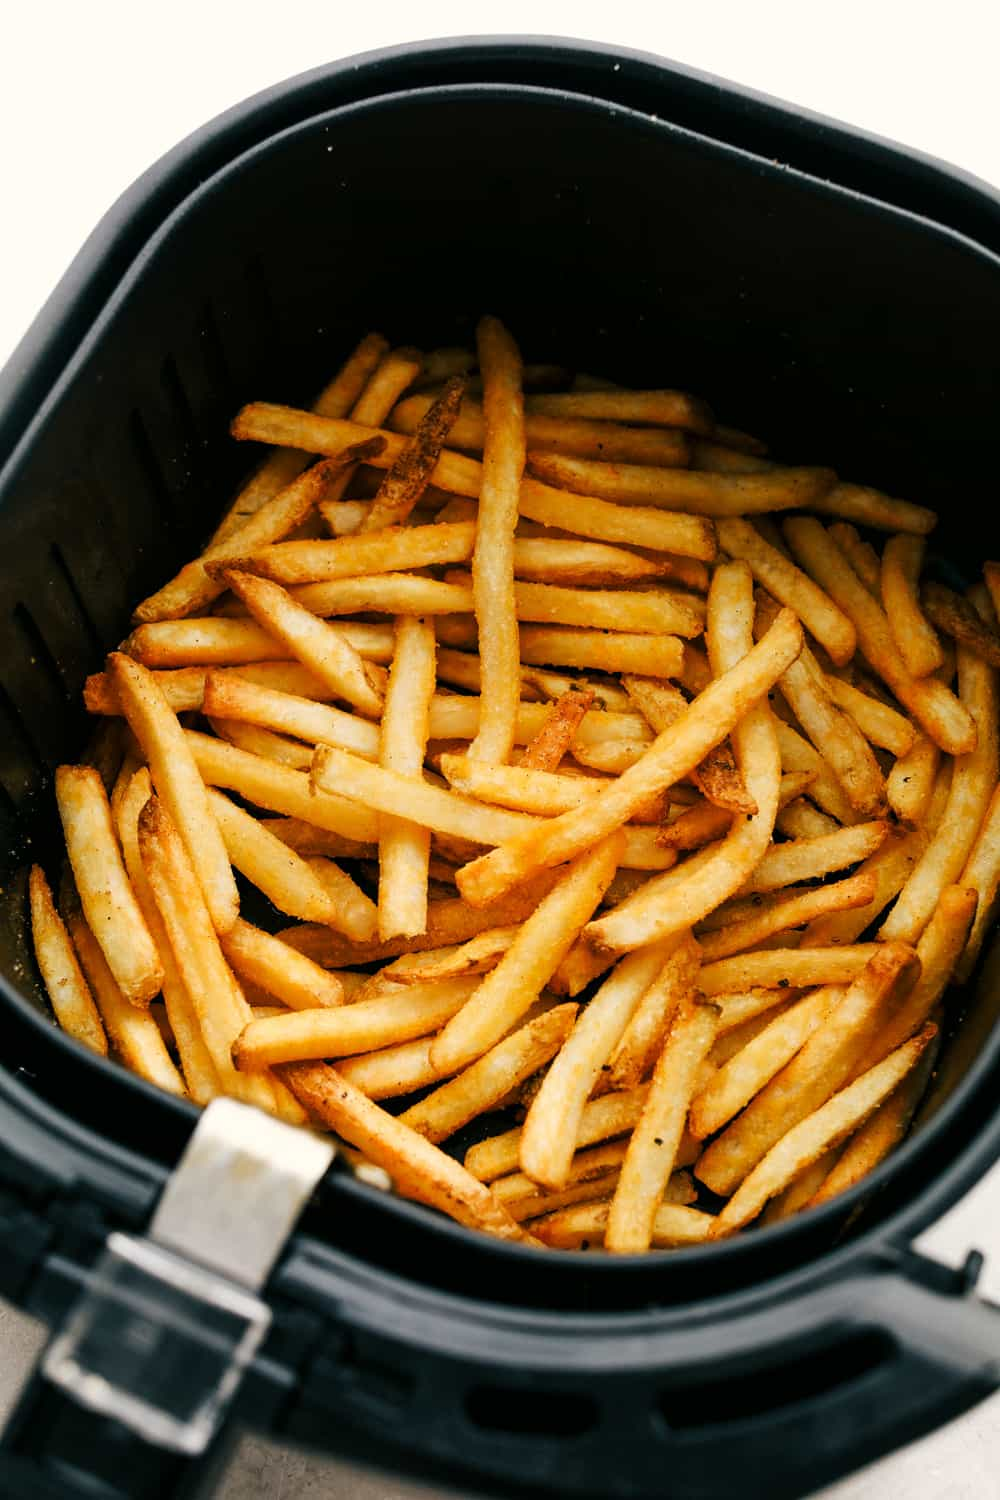 Frozen French Fries cooked in the air fryer.